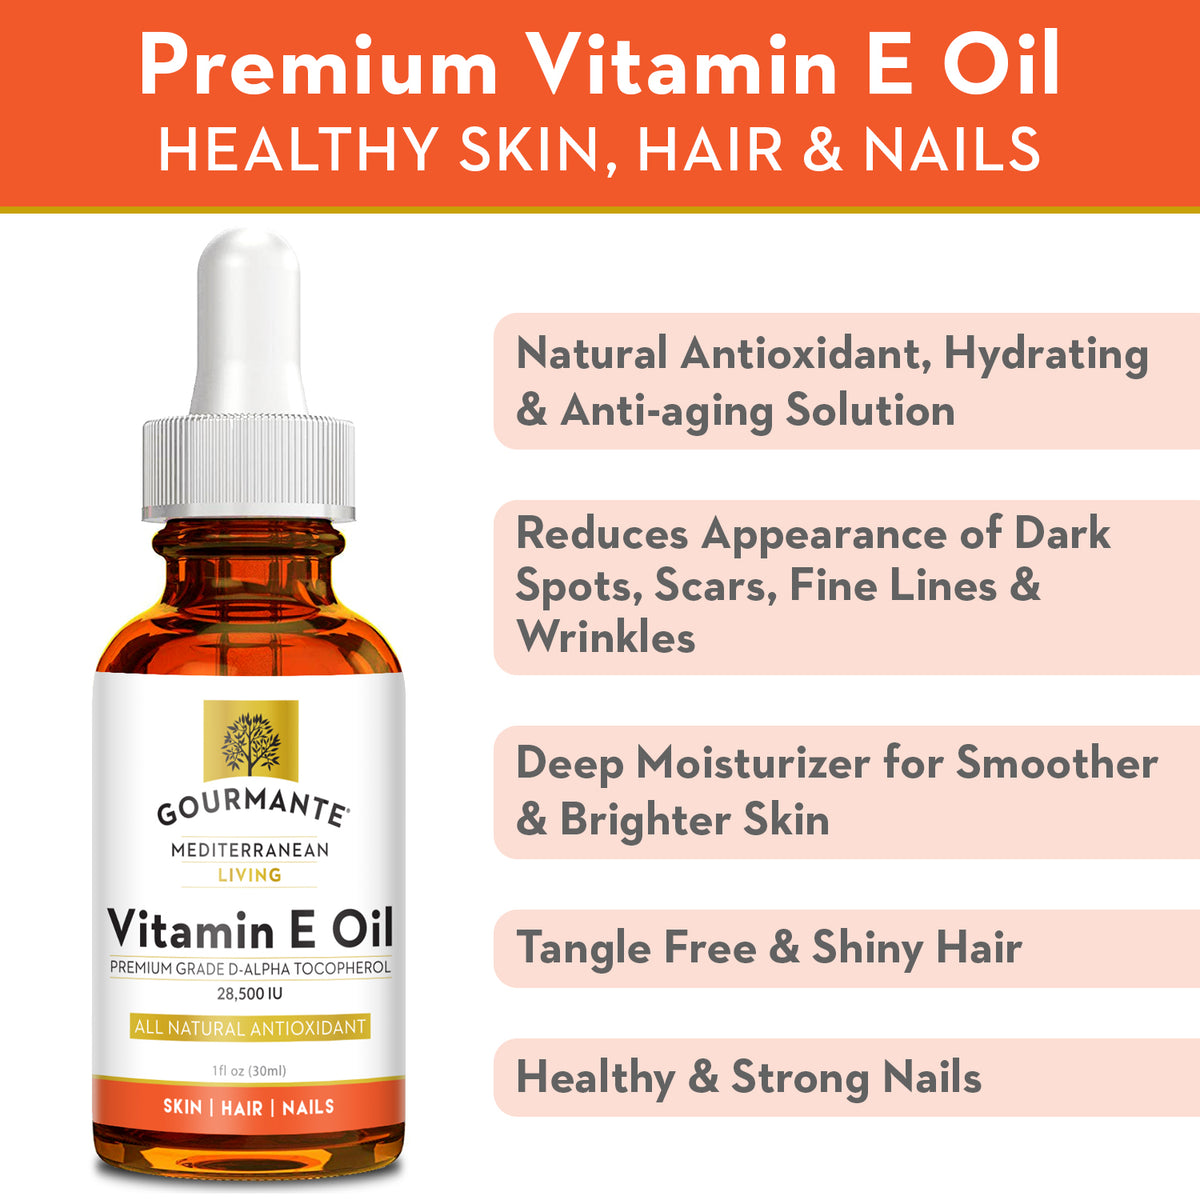 Gourmante vitamin e oil for healthy skin, hair & nails